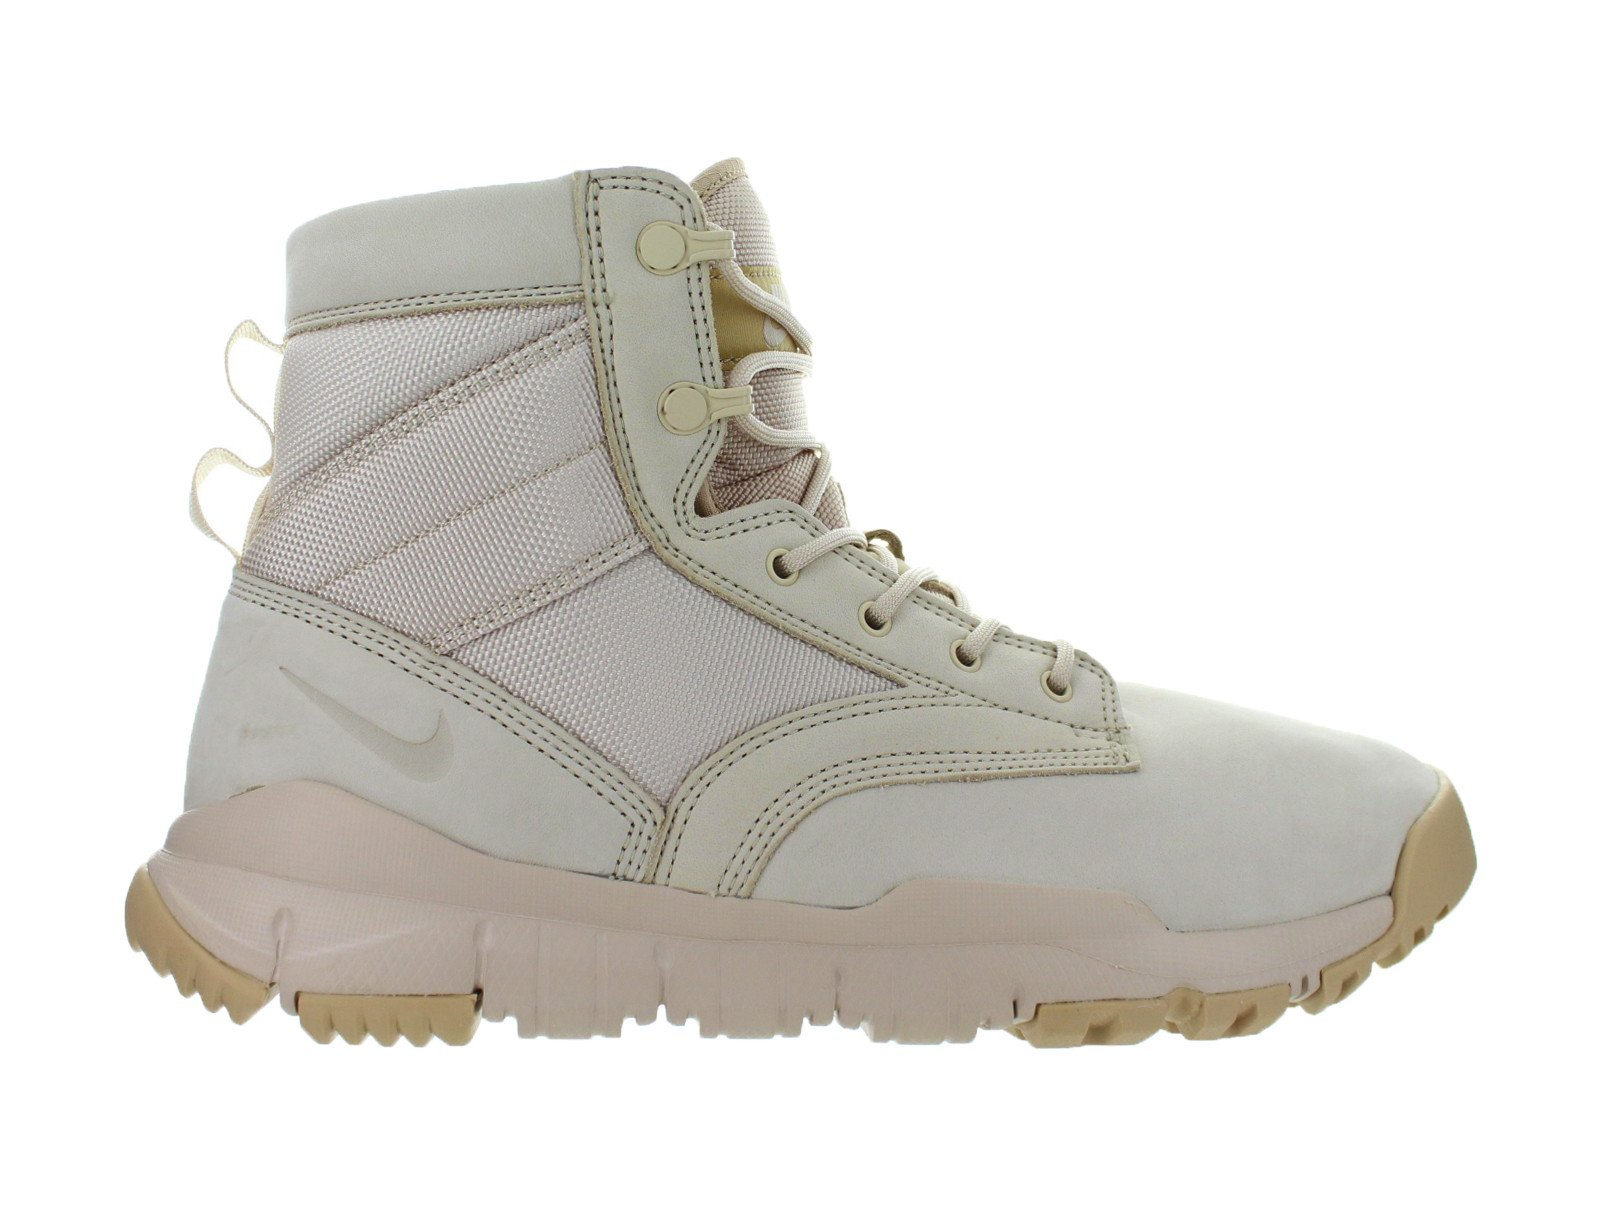 724613e3a79 ... netherlands mens nike sfb special field boot 6 nsw leather oatmeal  linen 862507 1 3bbb3 0a749